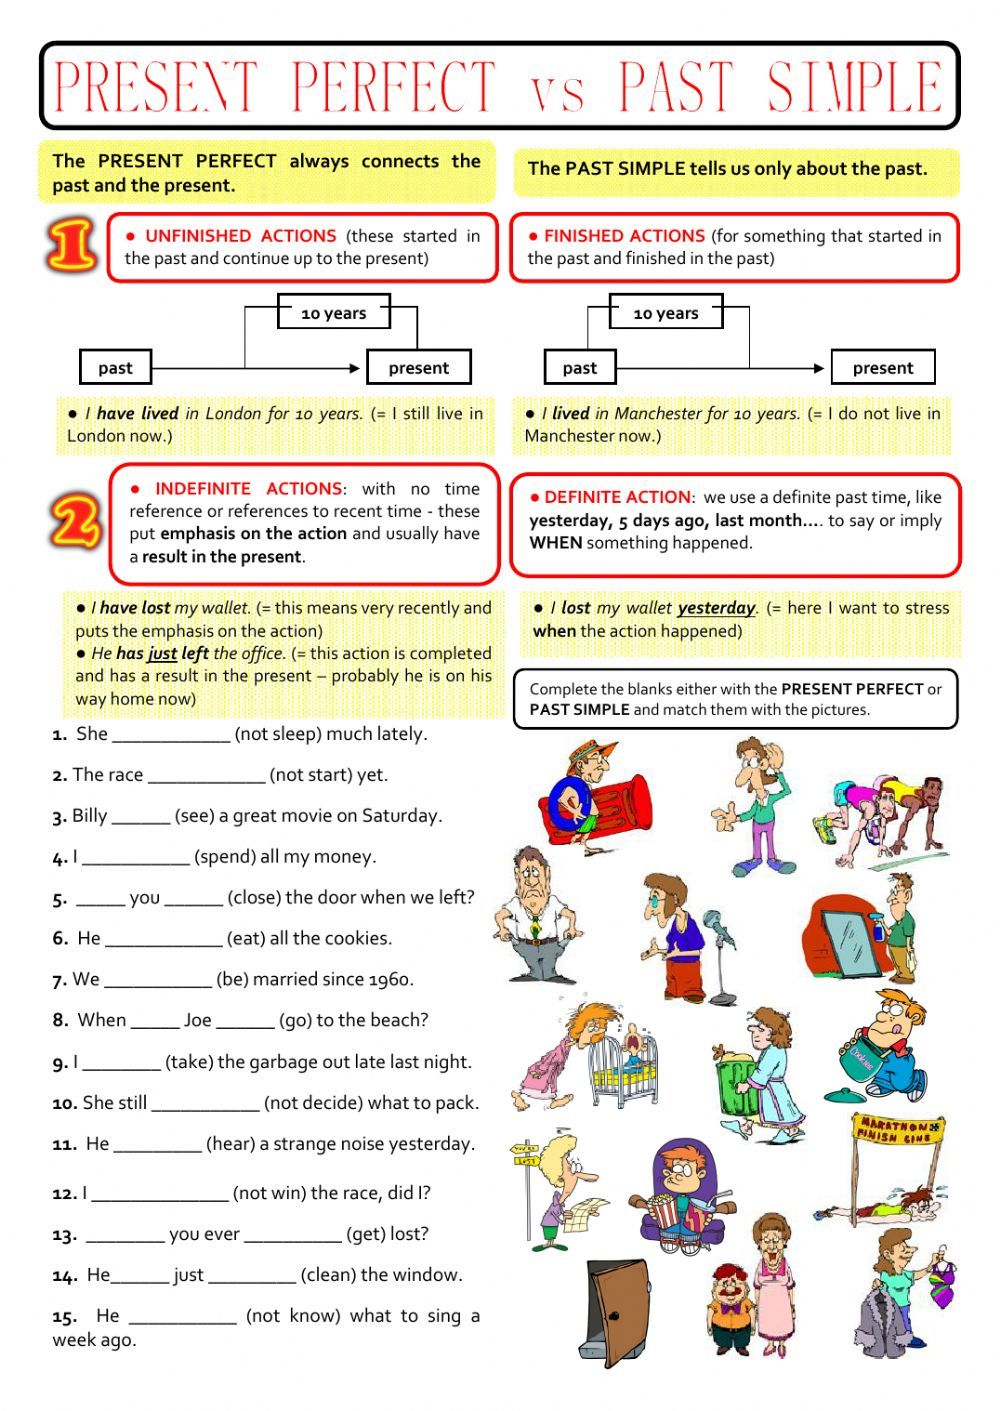 past simple and present perfect interactive and